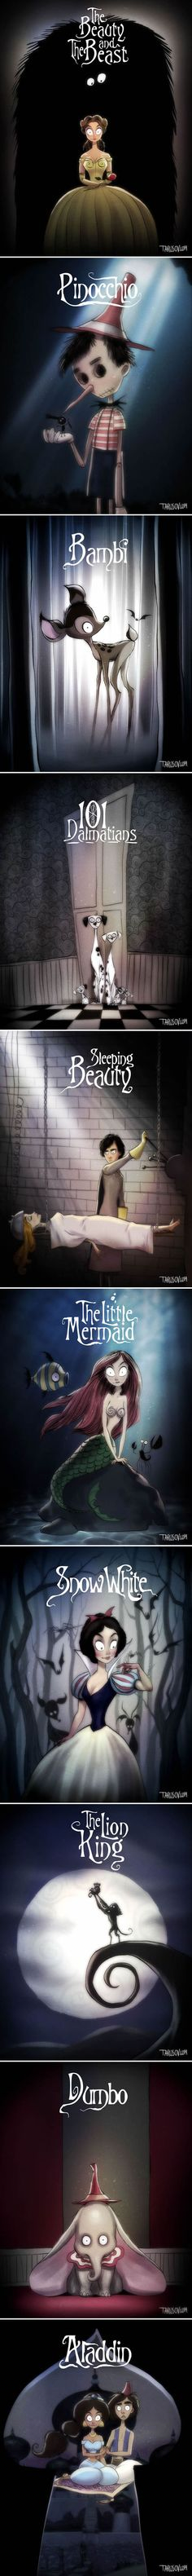 If Tim Burton Directed Disney Movies (By Andrew Tarusov)  how to change the atmosphere of a drawing